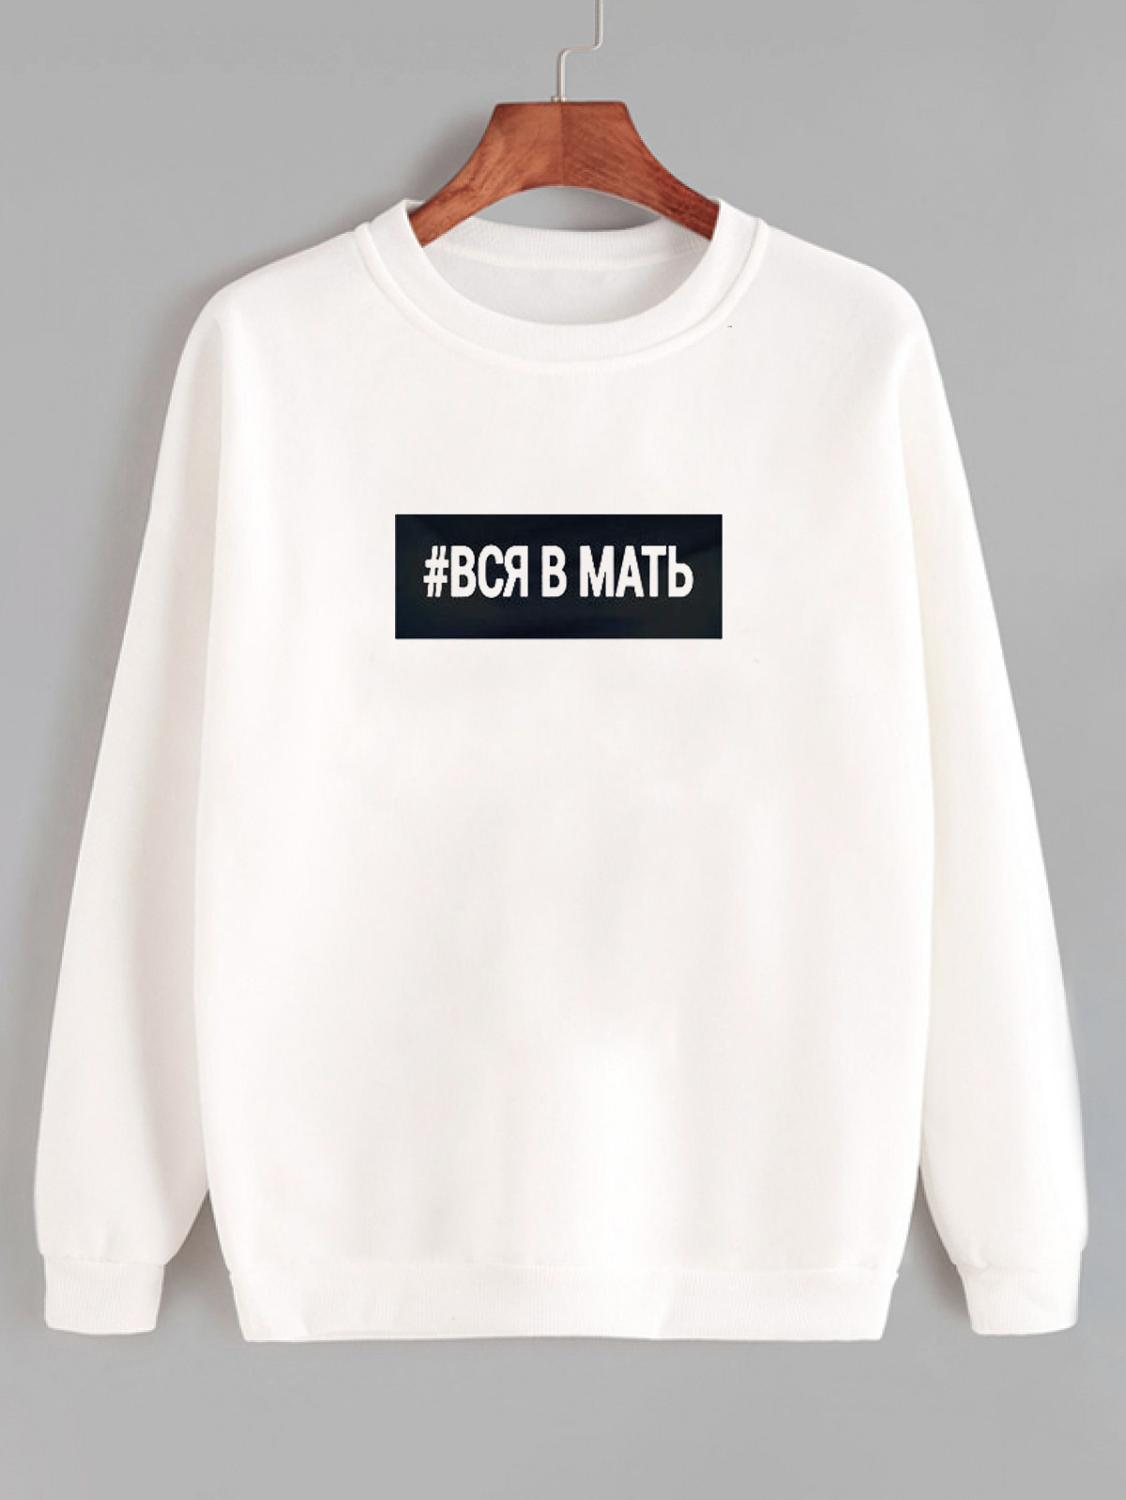 Sweatshirt All In Mother Russian Letter Printed New Arrival Women's Funny Long Sleeve Casual Cotton Tops